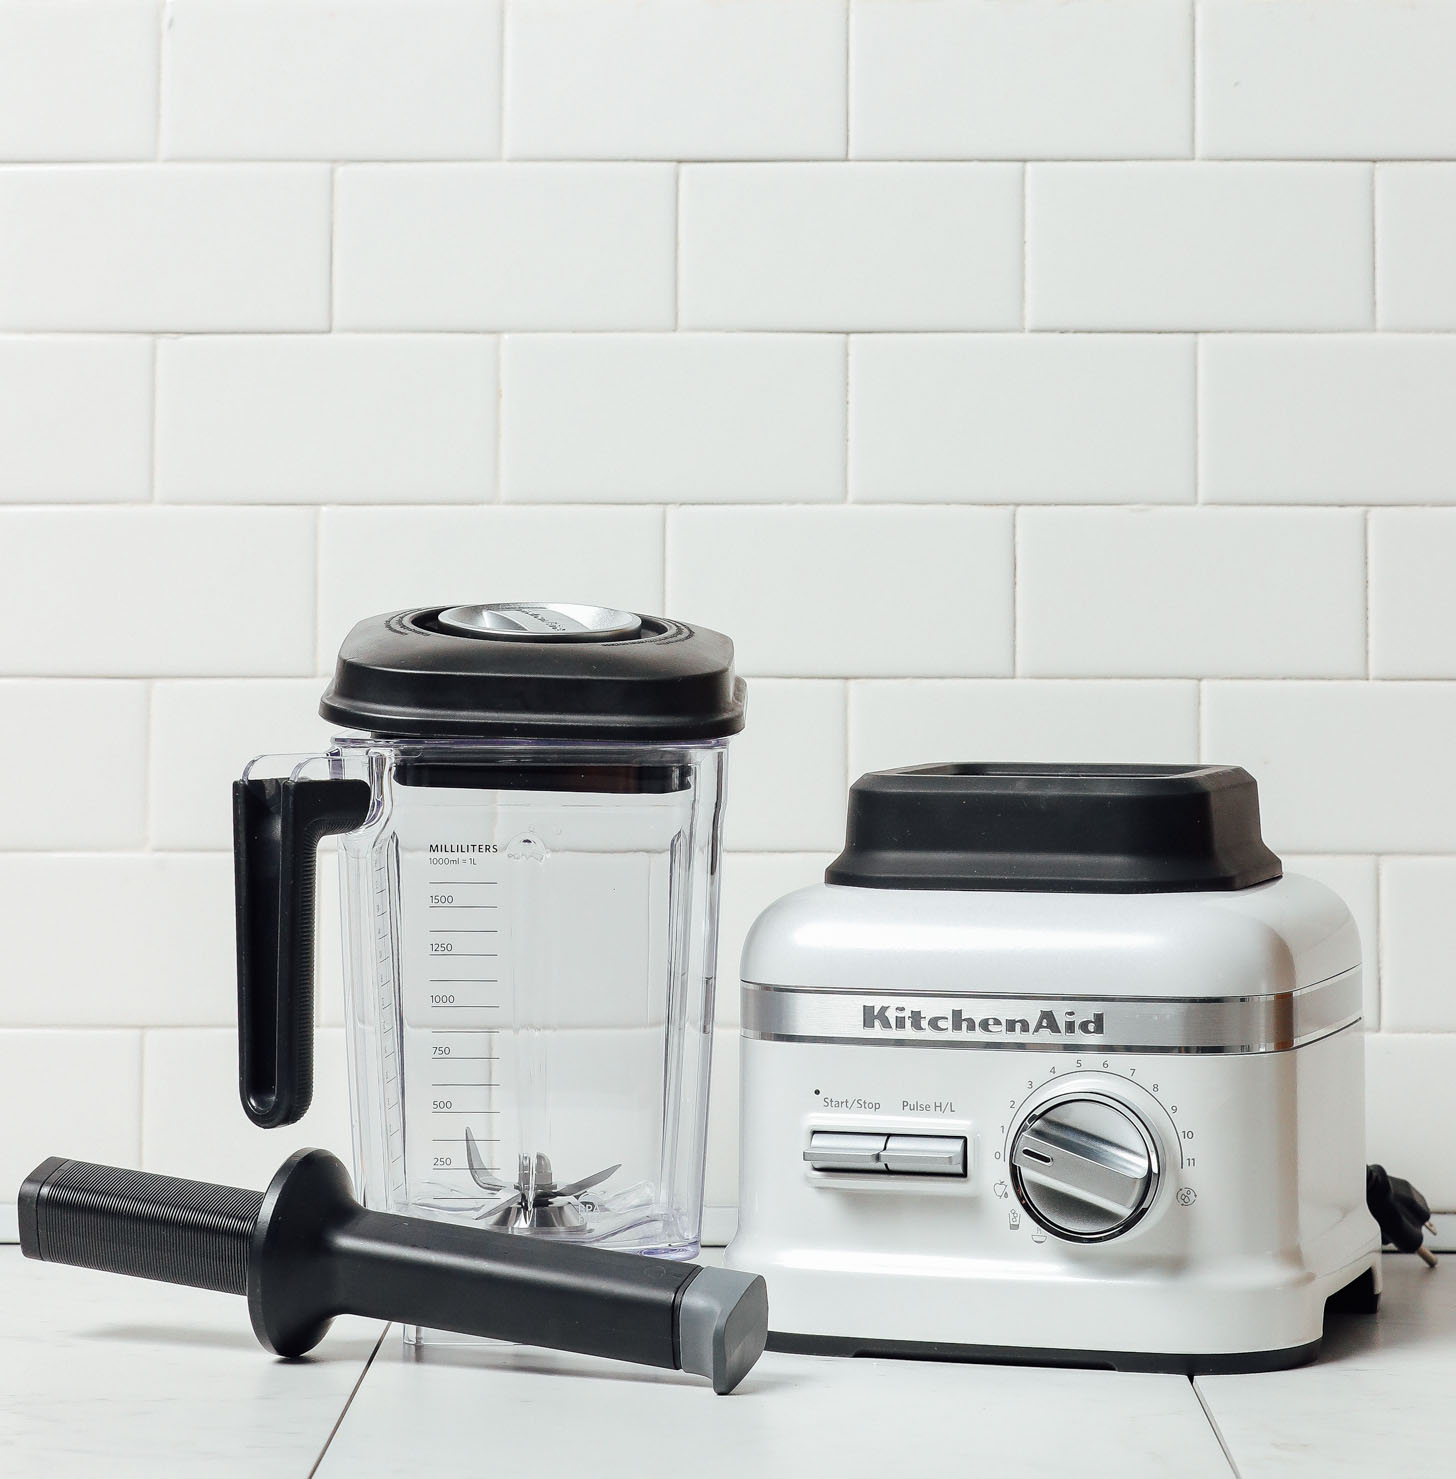 KitchenAid Pro Series Blender in white for our unbiased blender review